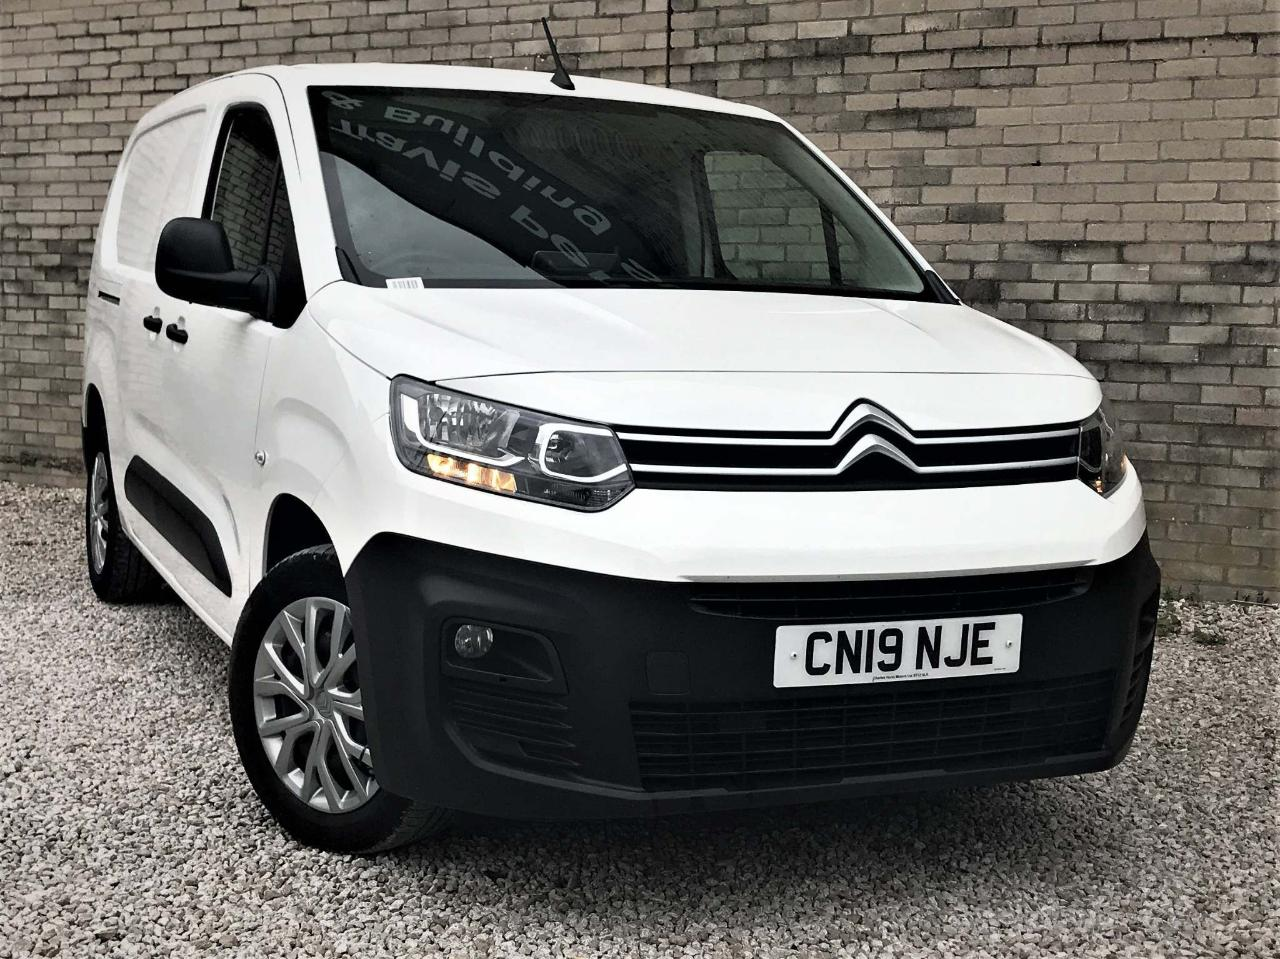 Citroën Berlingo 1.6 BlueHDi 950 Enterprise XL LWB EU6 (s/s) 6dr